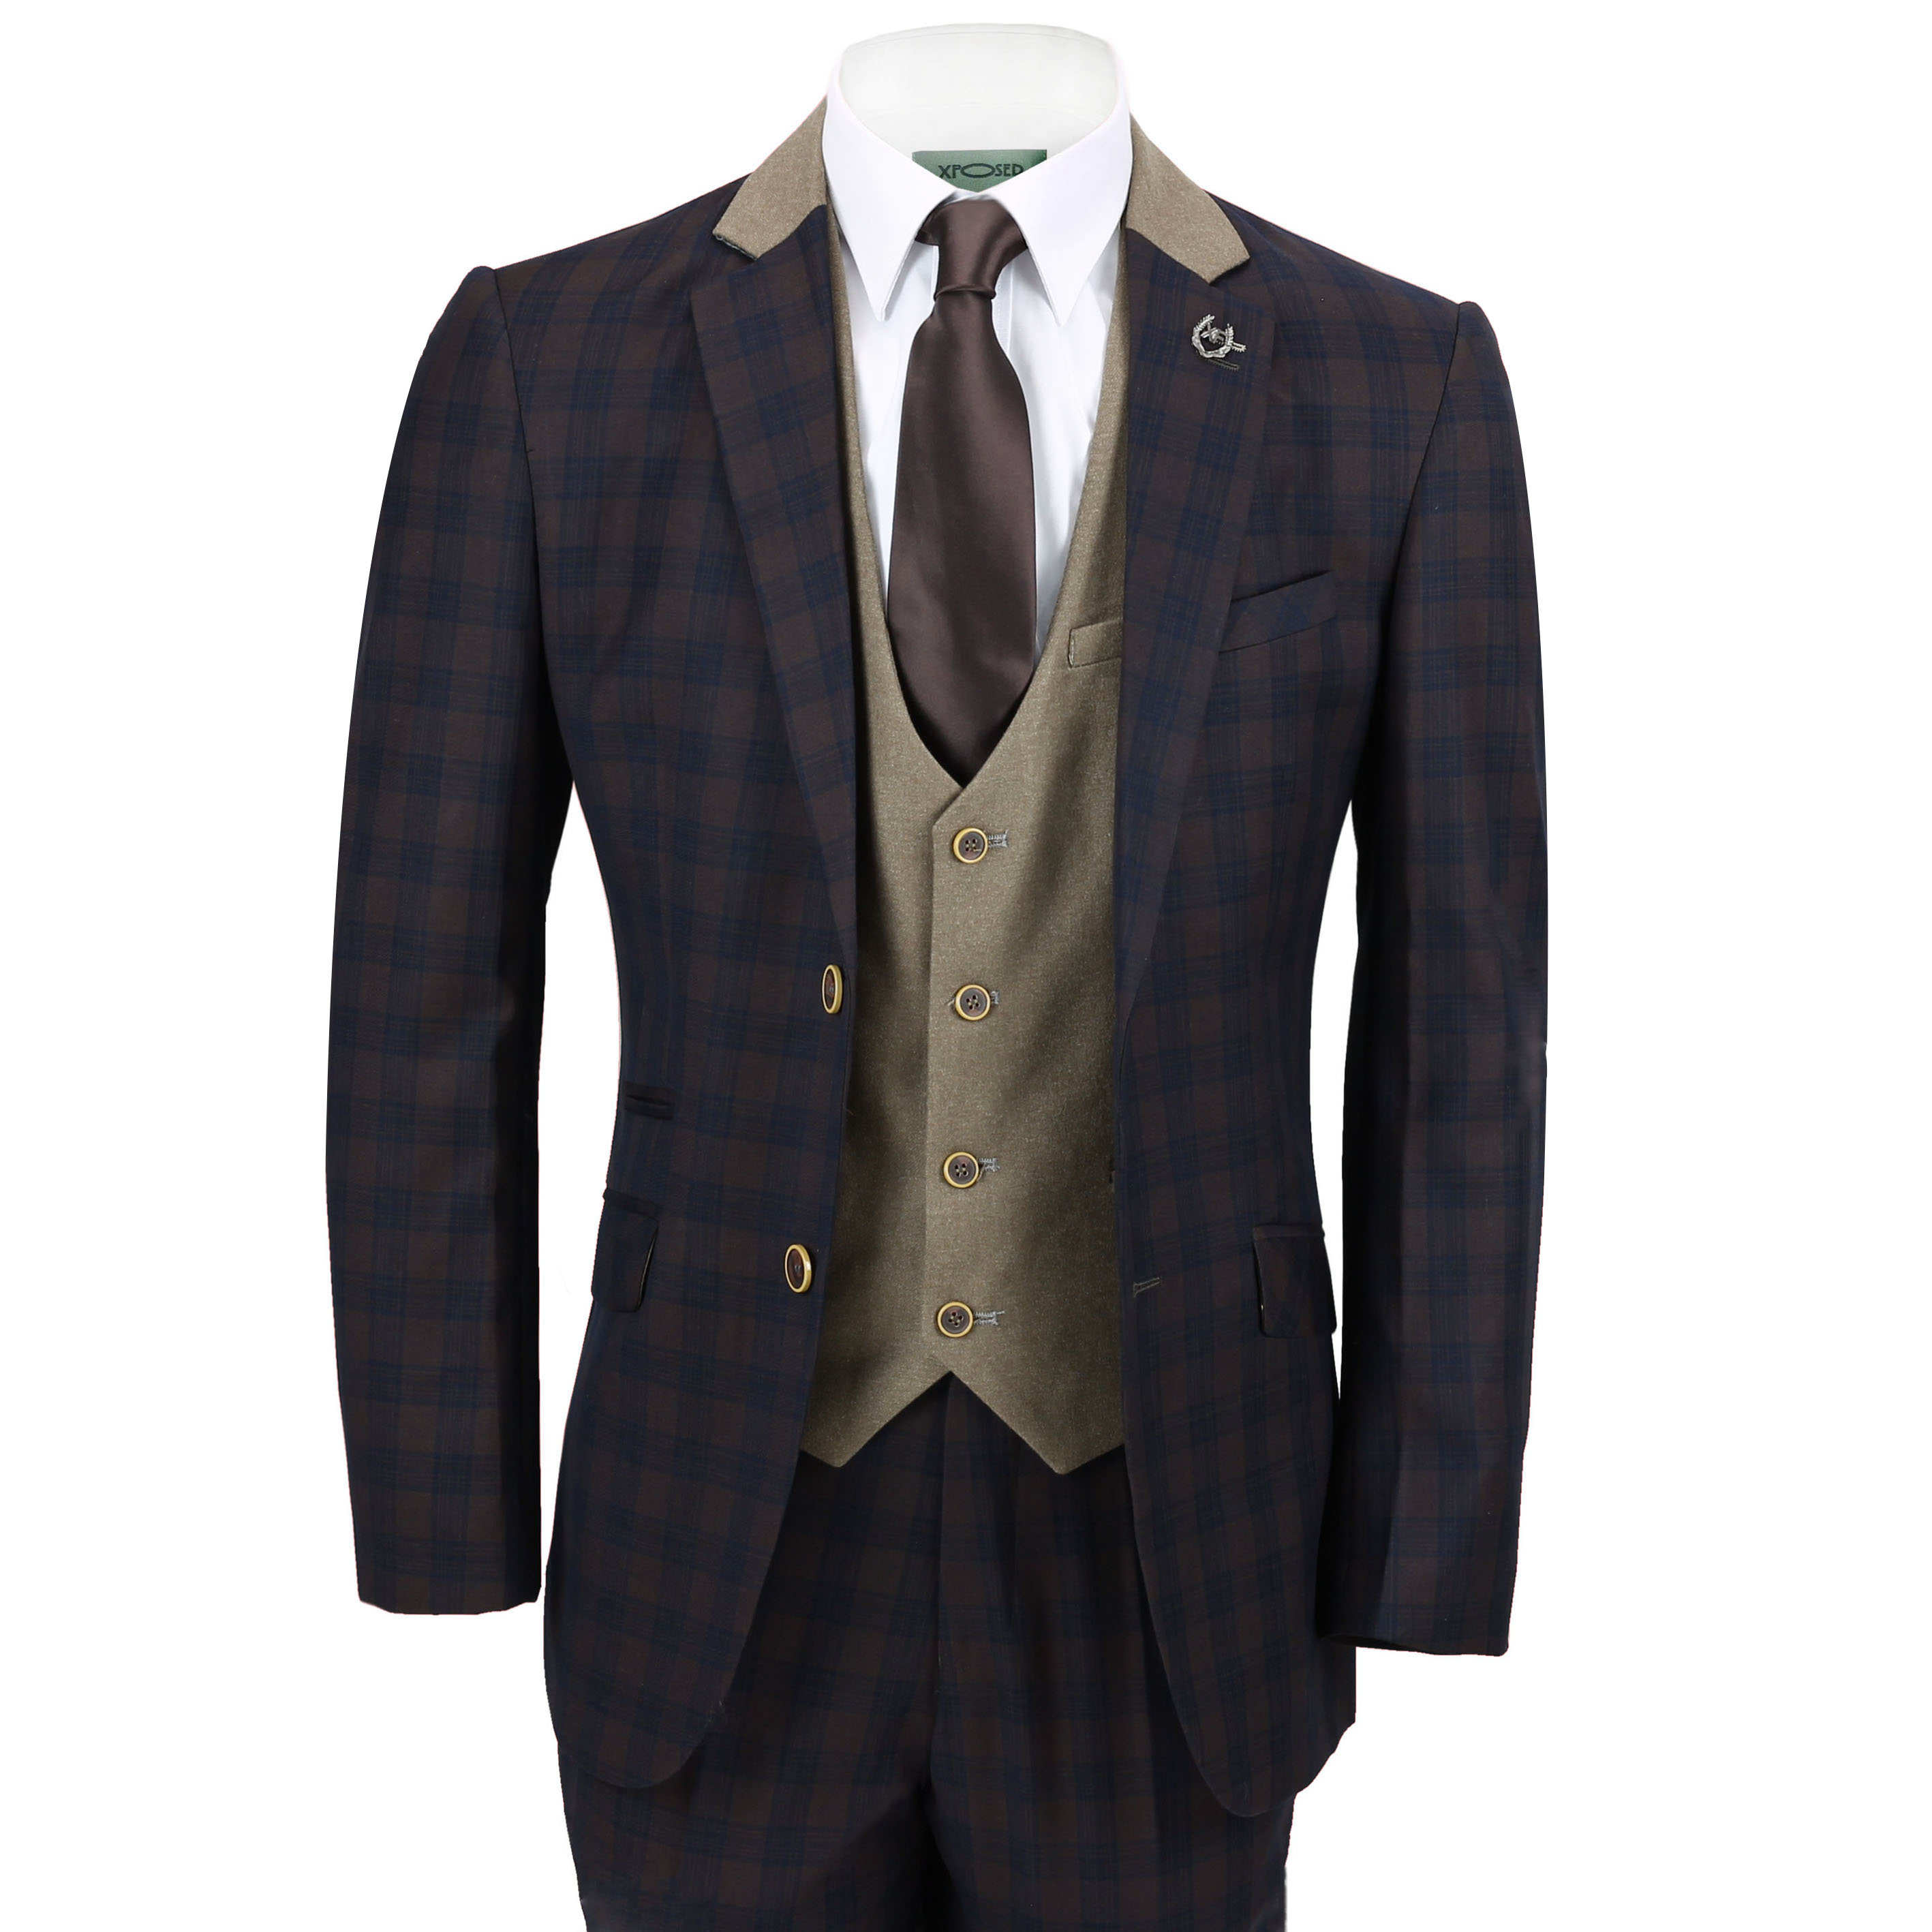 6232a05c7dfe Vintage Tailored Fit Mens 3 Piece Suit Navy Check on Brown Contrasting  Waistcoat